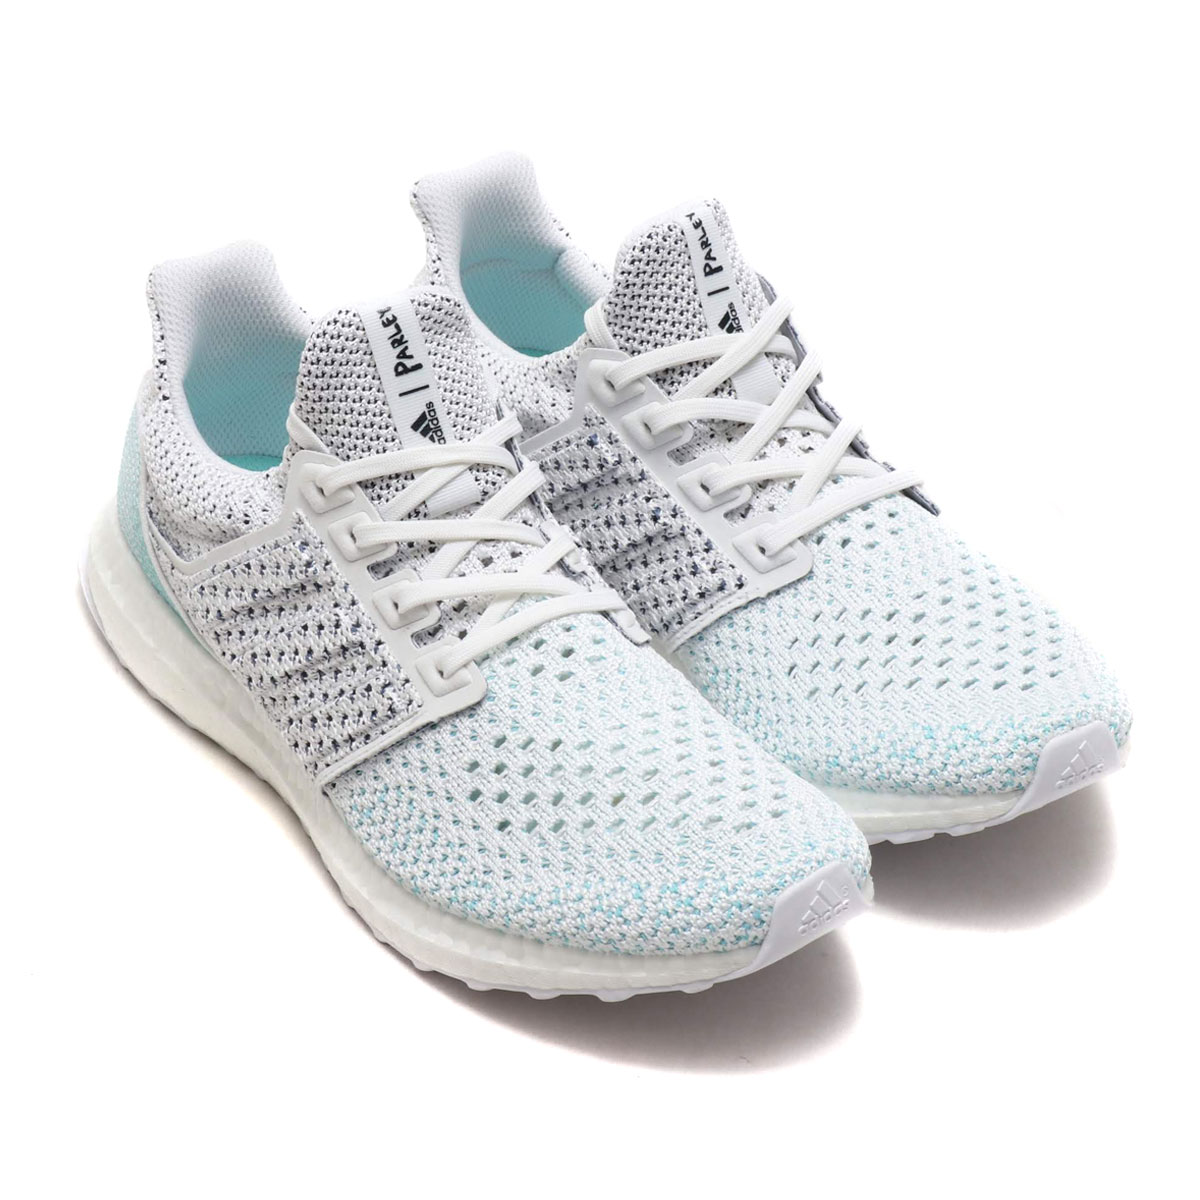 7cd6864e968d34 The BOOST form deployment model who changes the concept of the running. I  realize unprecedented cushion characteristics and repulsion